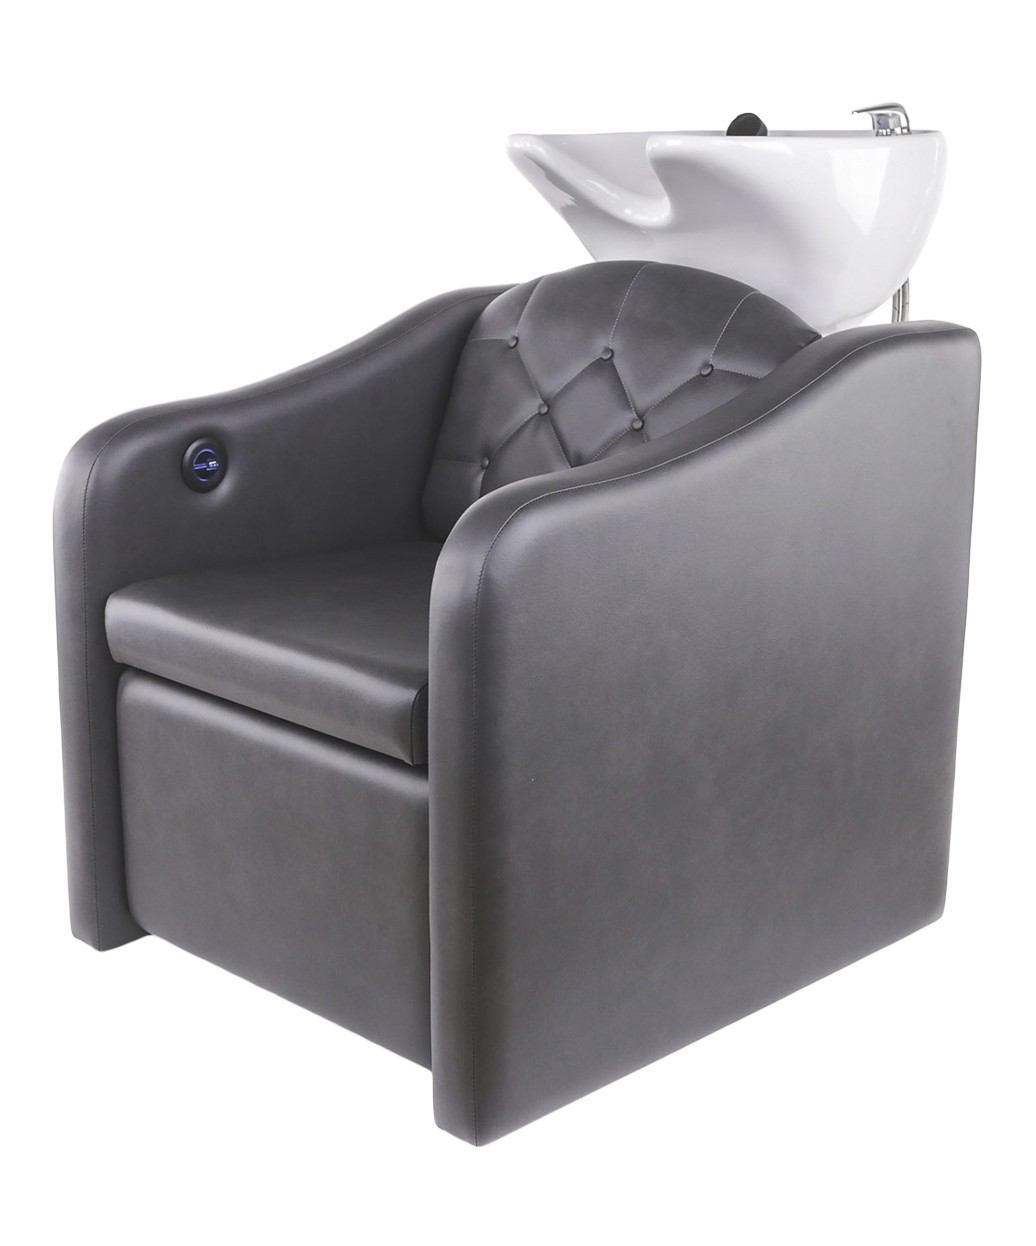 Collins 2875 Sann Comfort Wash